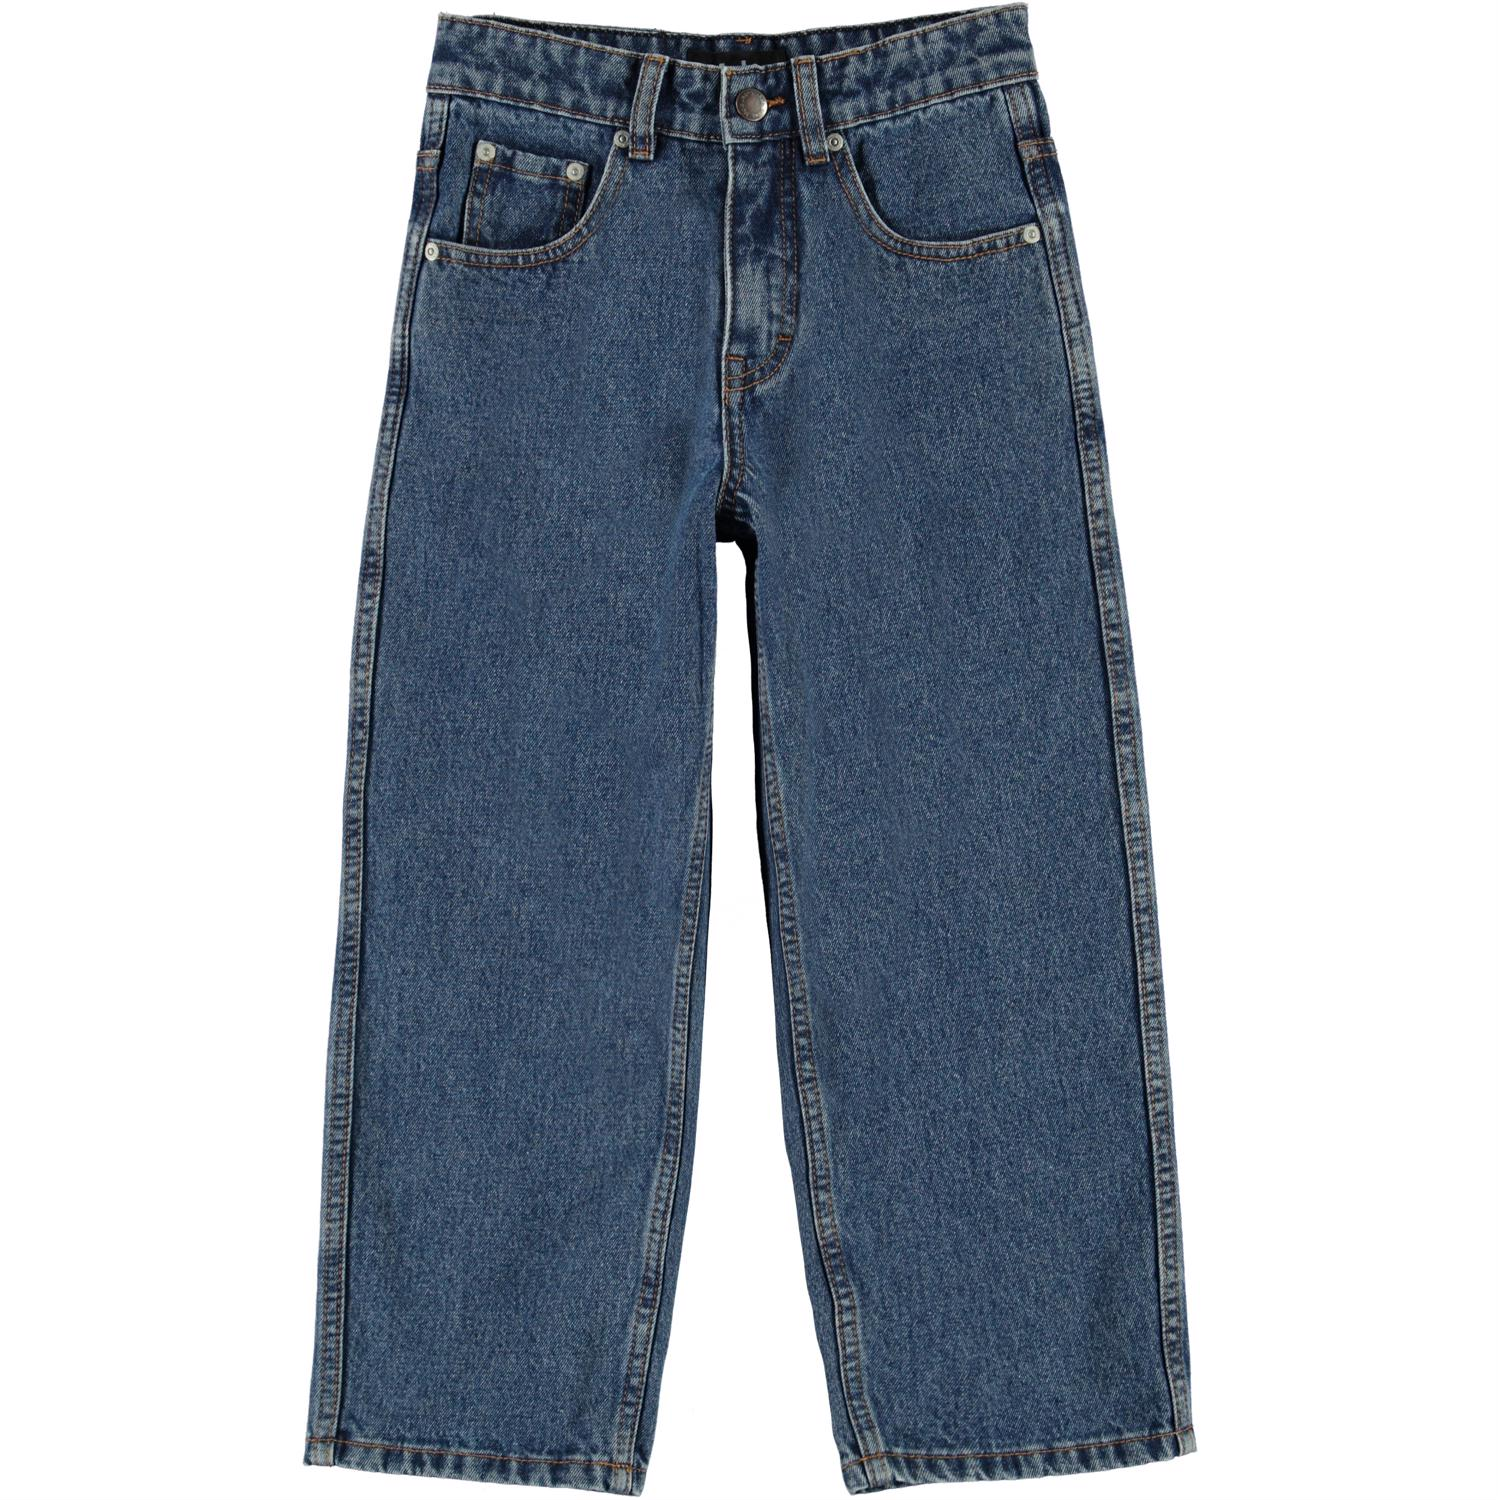 Aiden loose fit Jeans